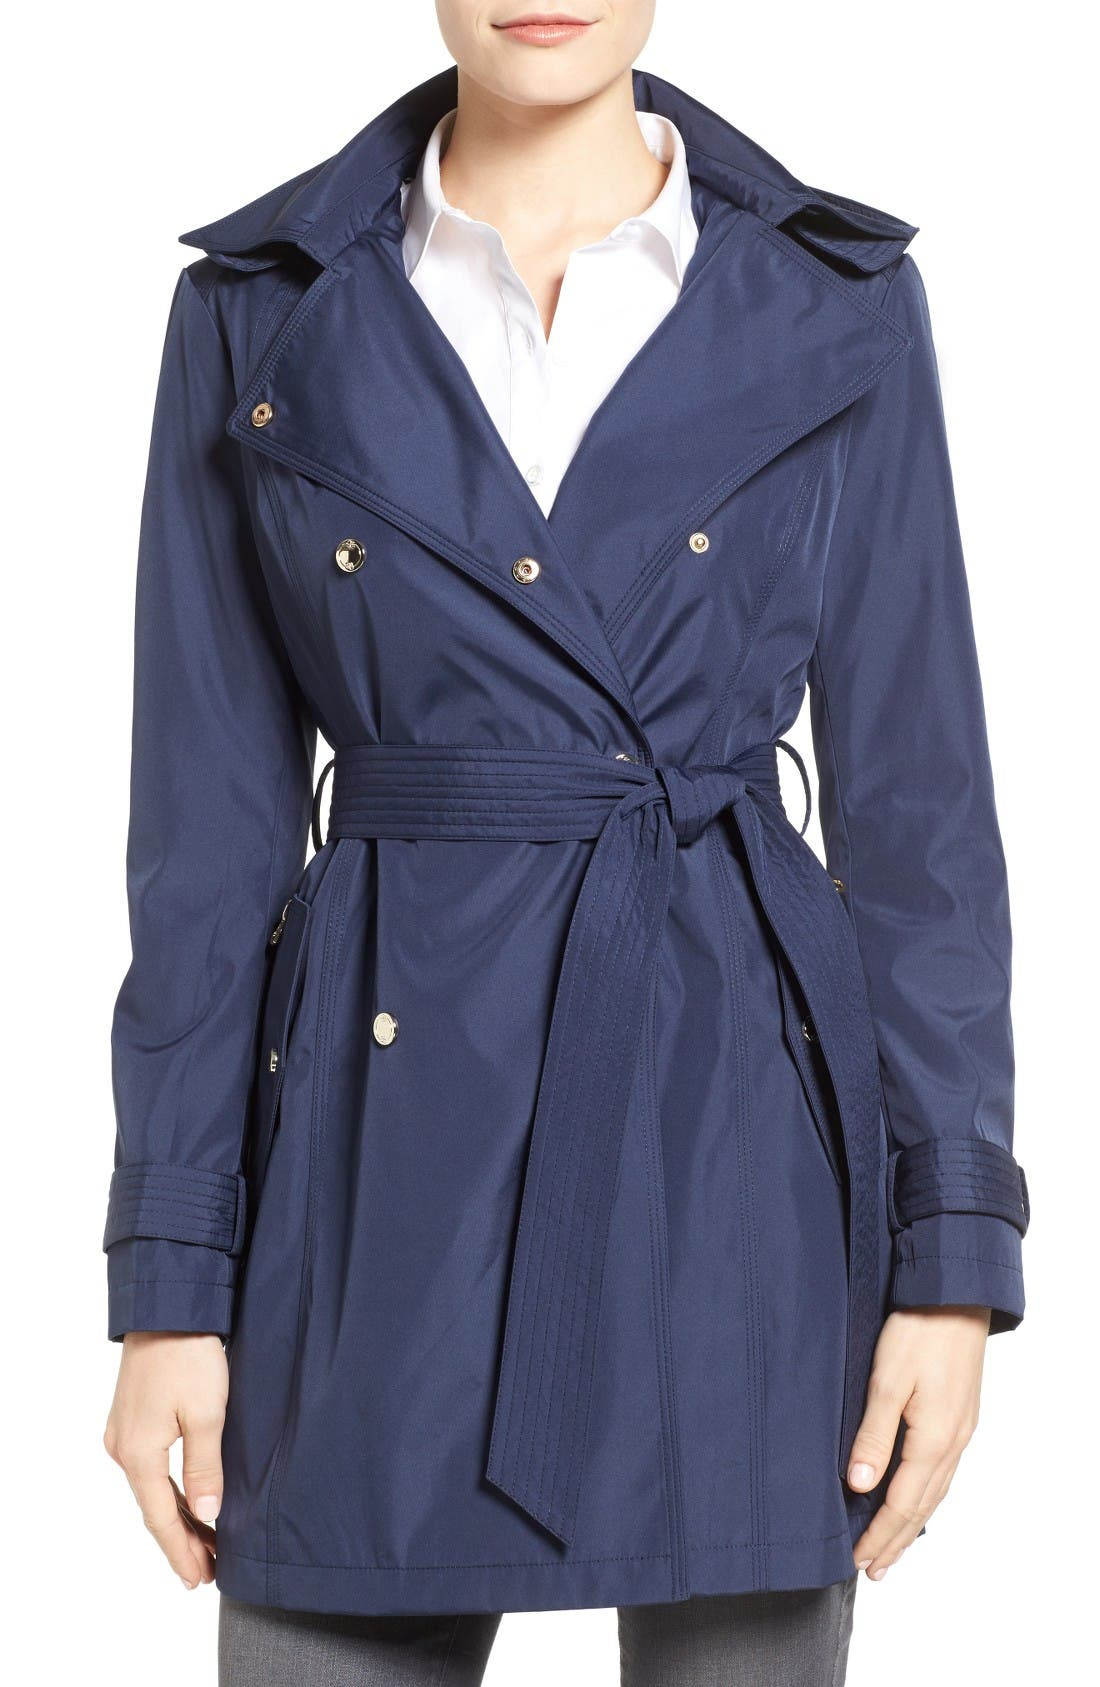 Alternate Image 1 Selected - Jessica Simpson Trench Coat